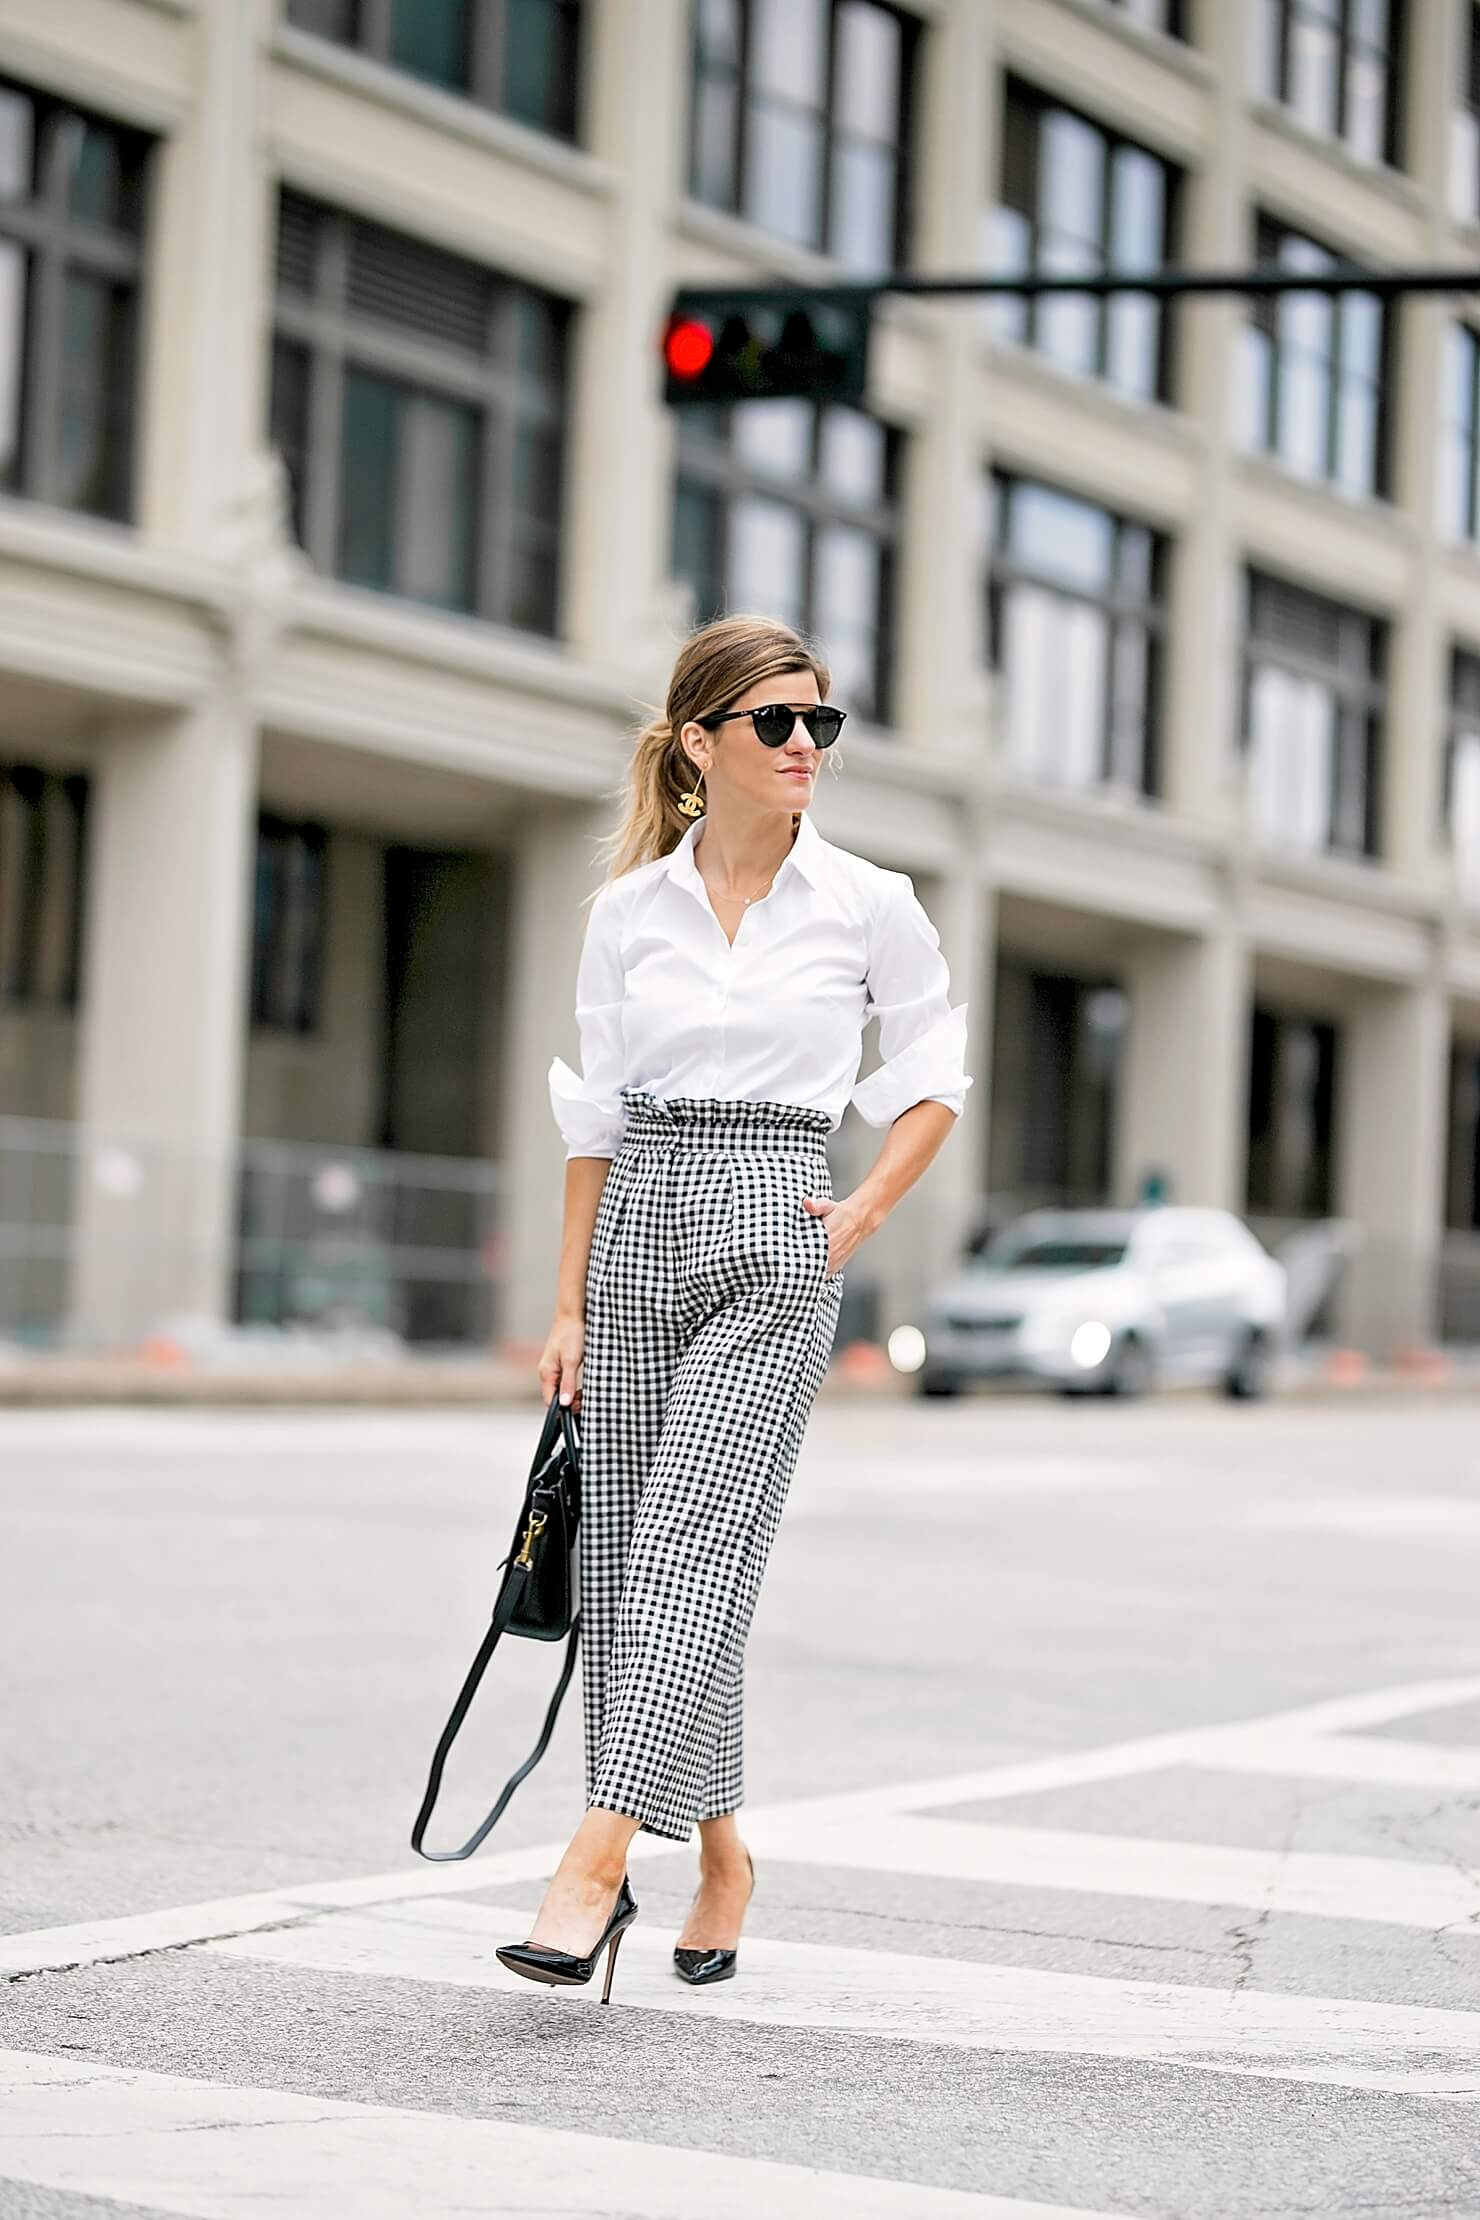 brighton keller wearing gingham pants with white button down and black pointy toe pumps